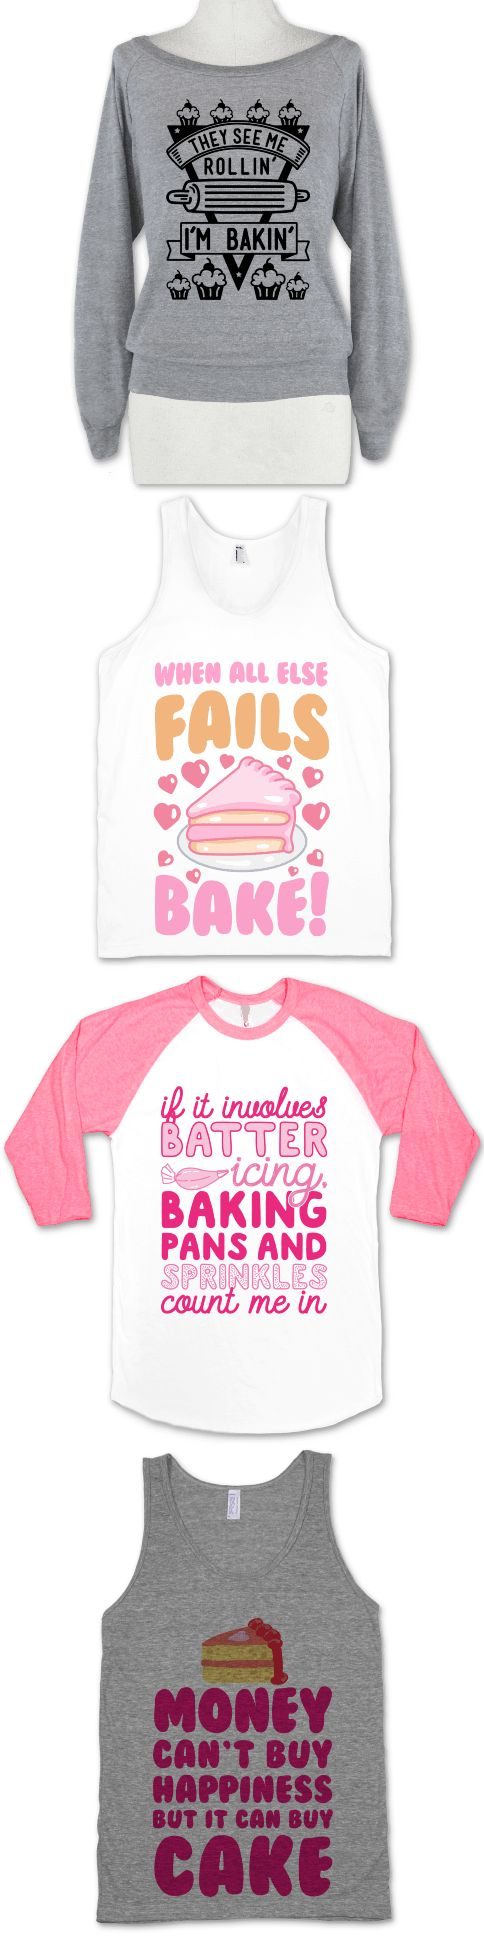 Show off your passion for baking with these super adorable baking and cake lovers shirts. Now go bake your heart out.